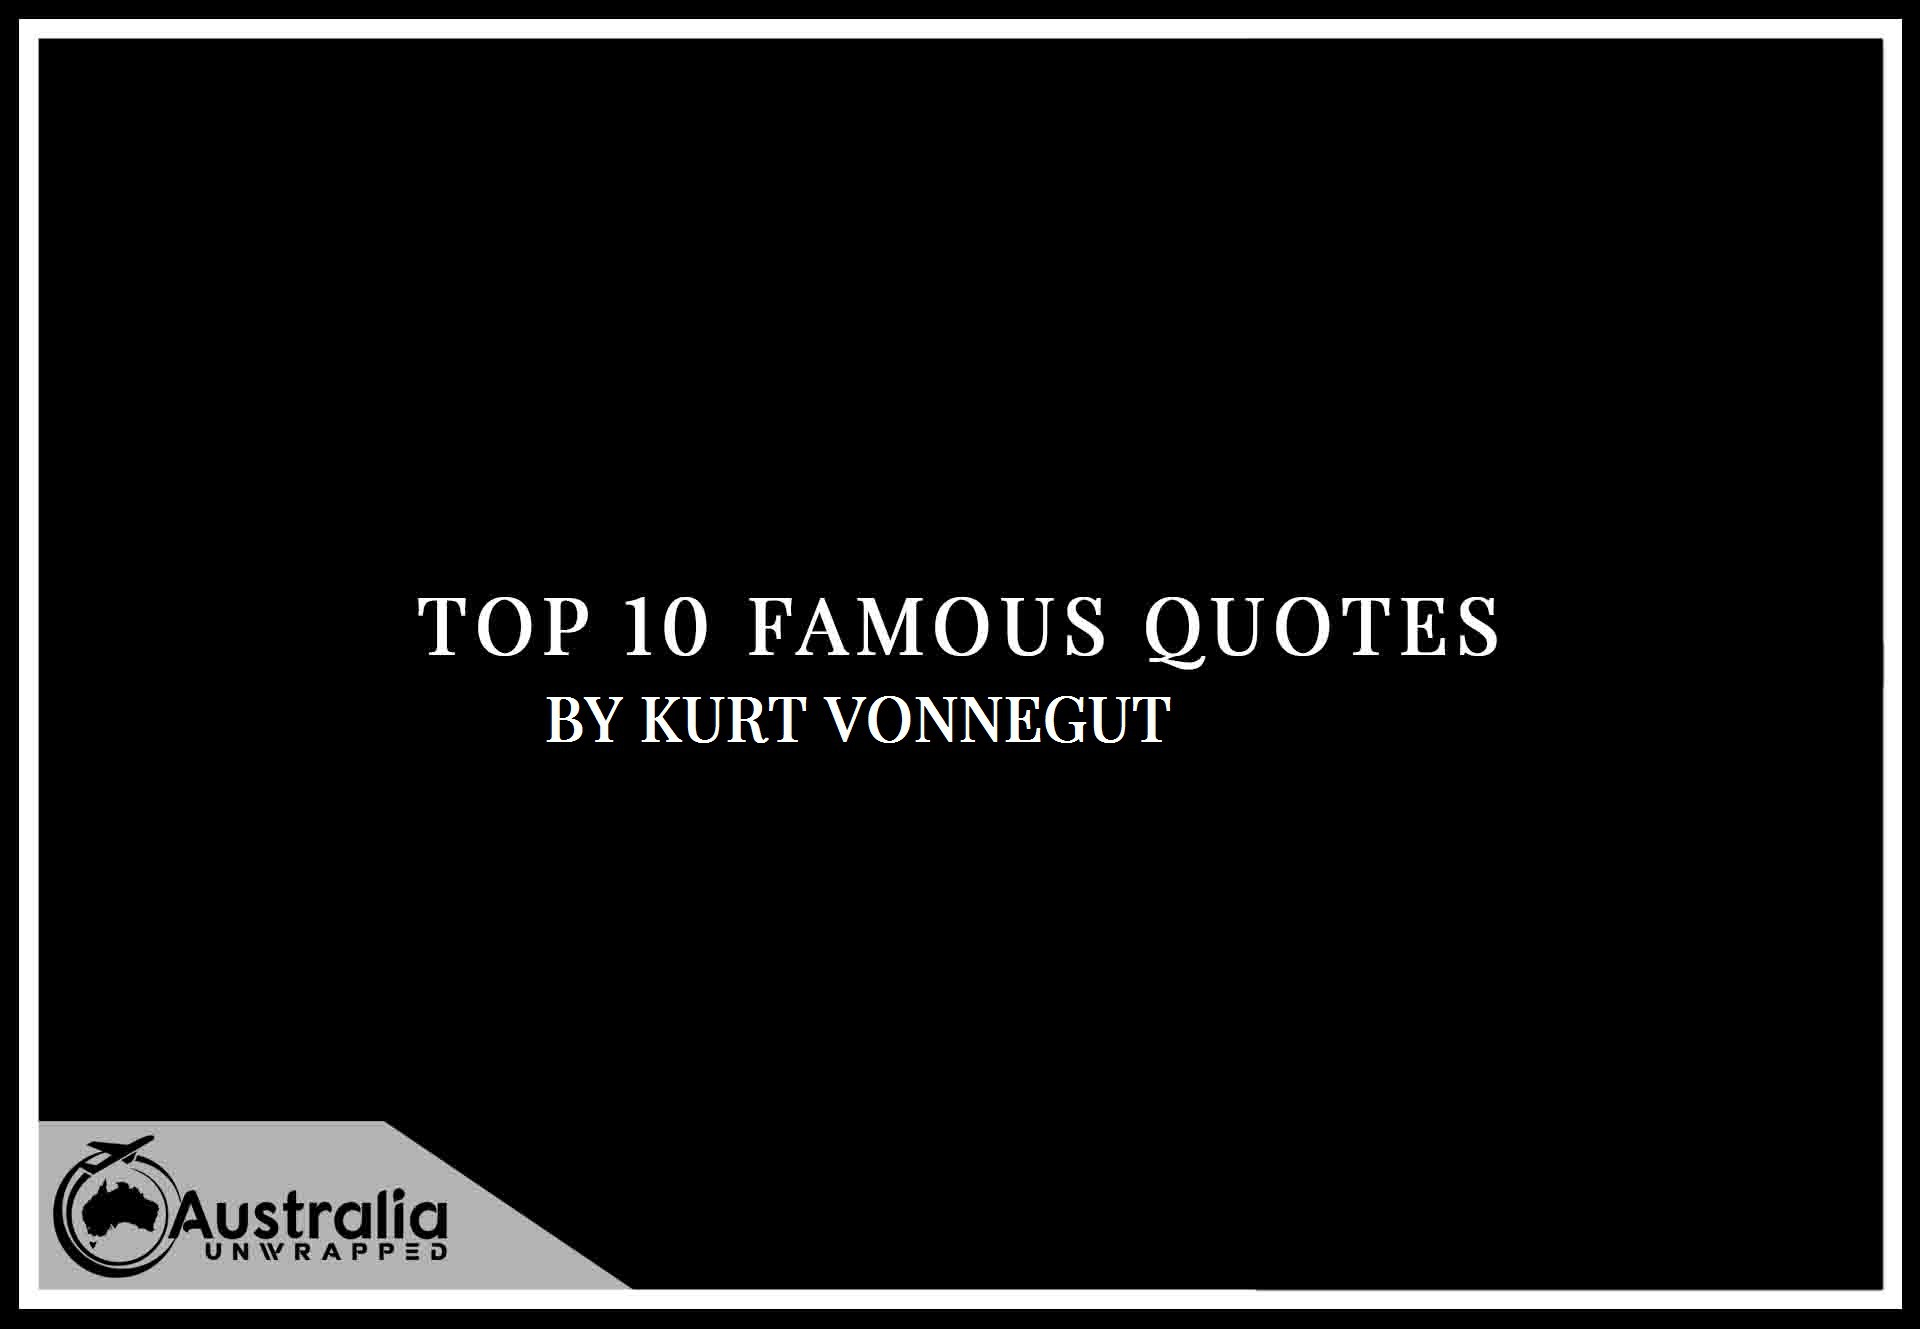 Kurt Vonnegut's Top 10 Popular and Famous Quotes